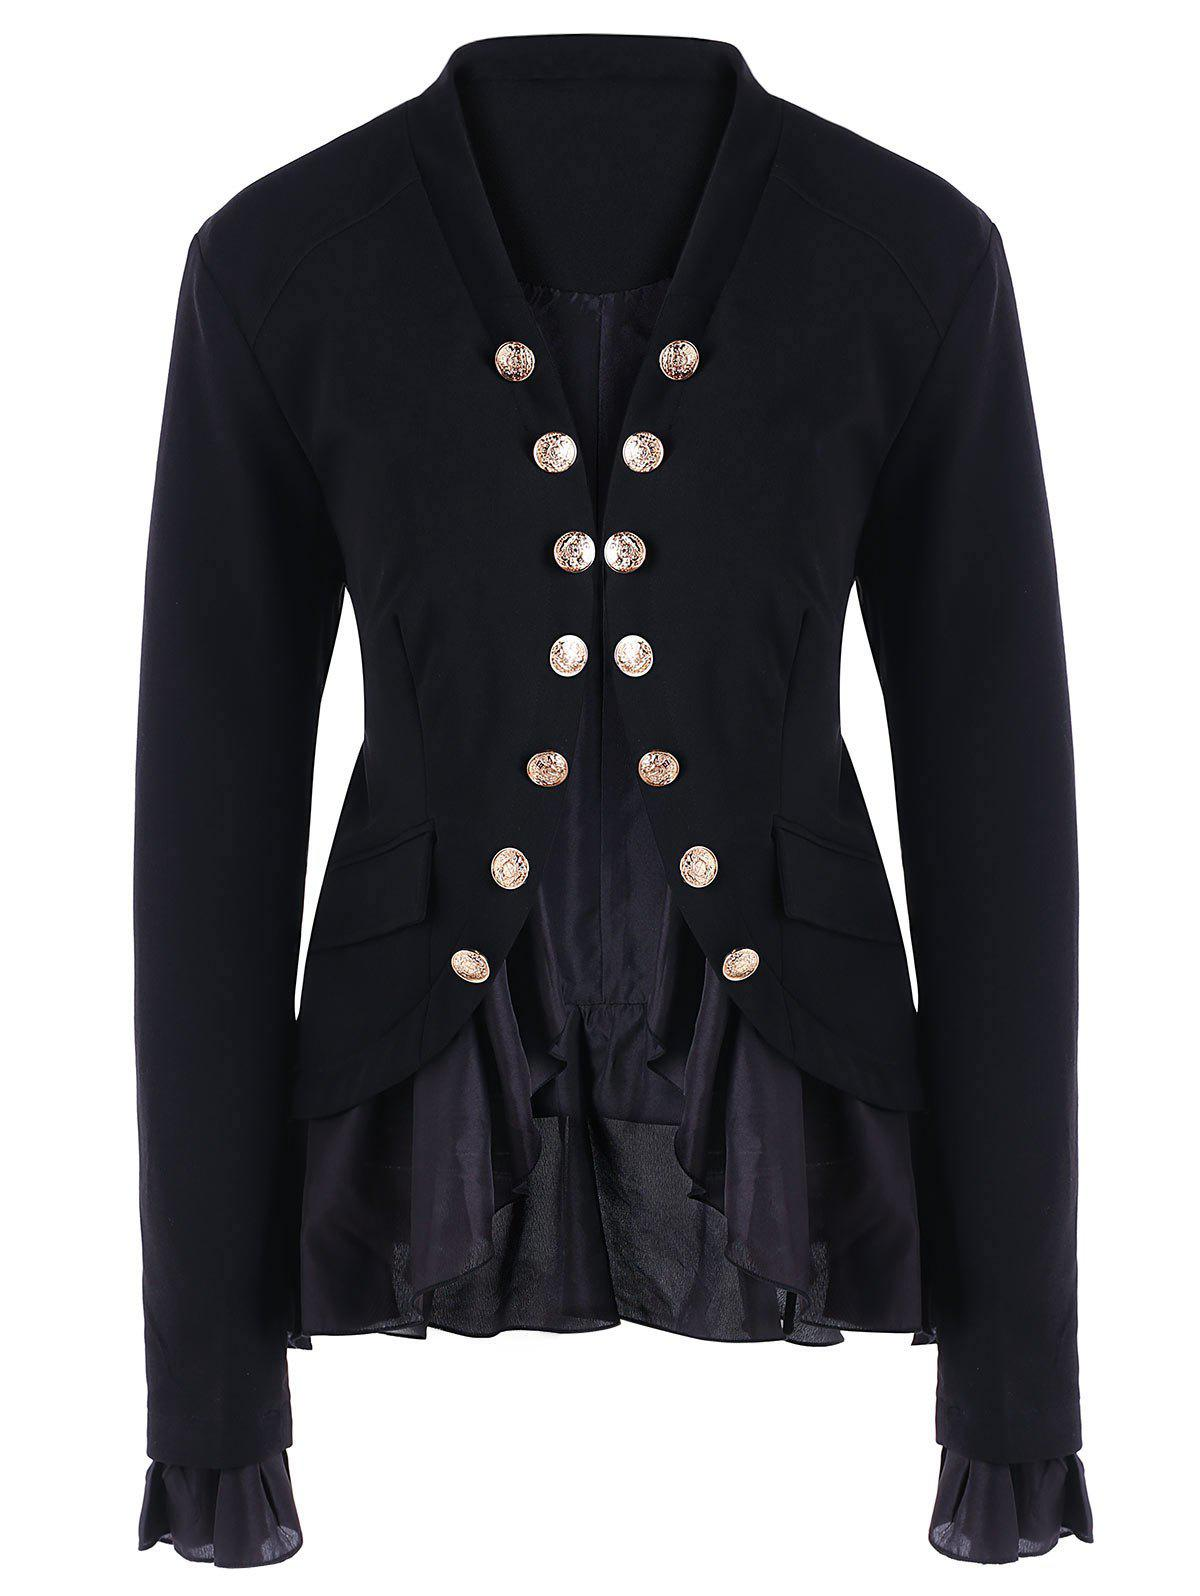 Discount Chiffon Trimmed Buttons Jacket